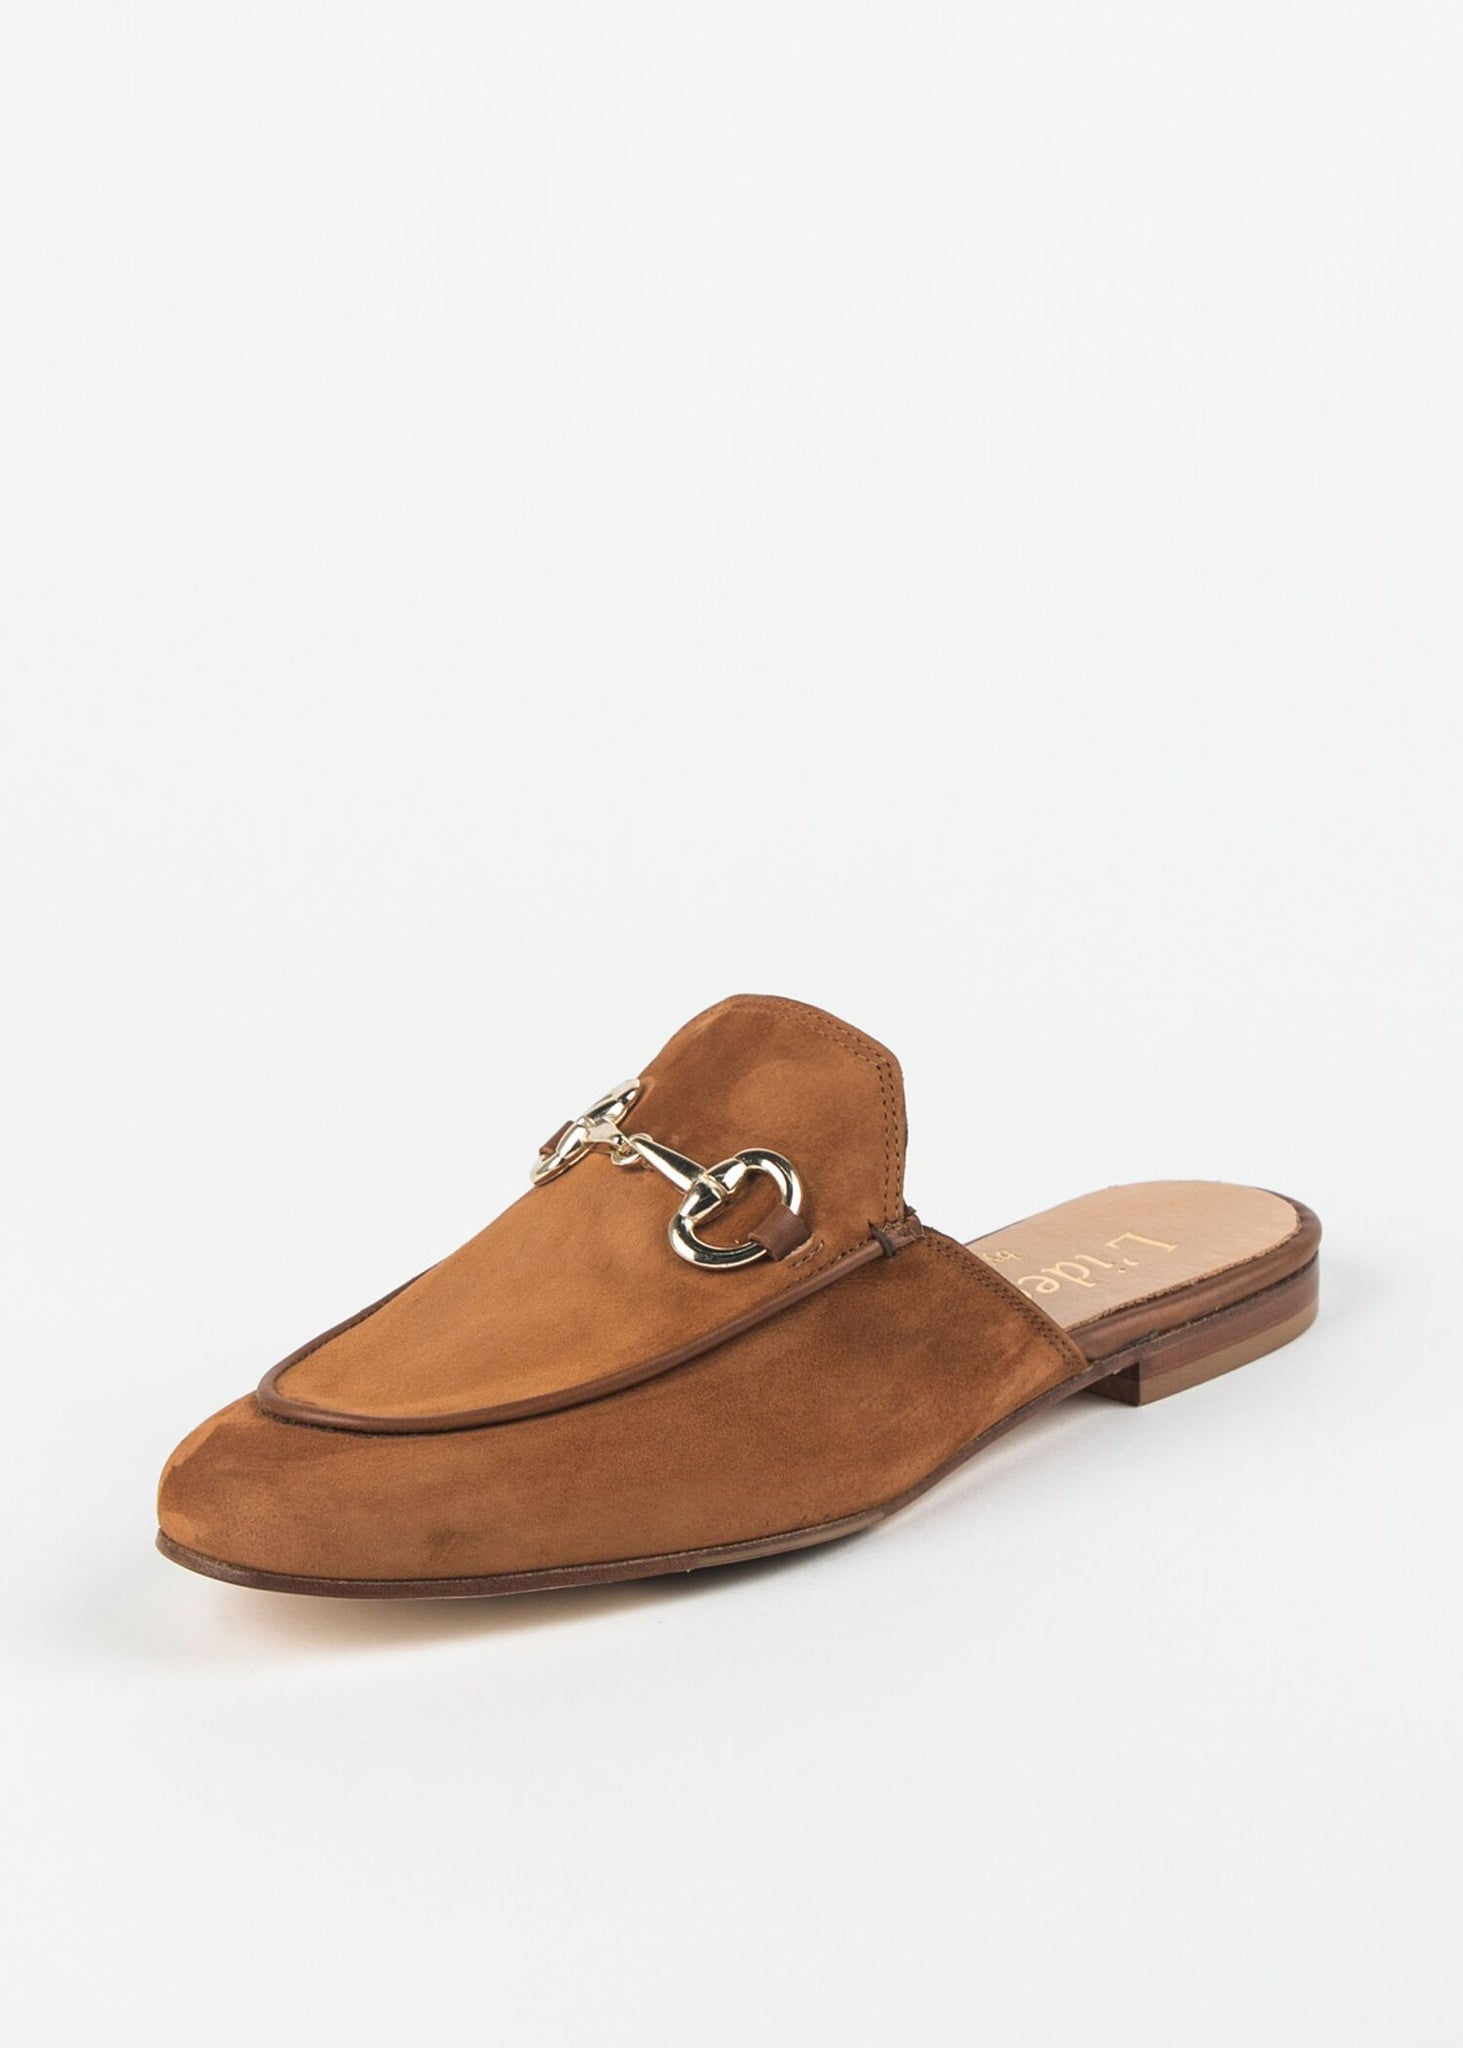 SUEDE MULE WITH BIT